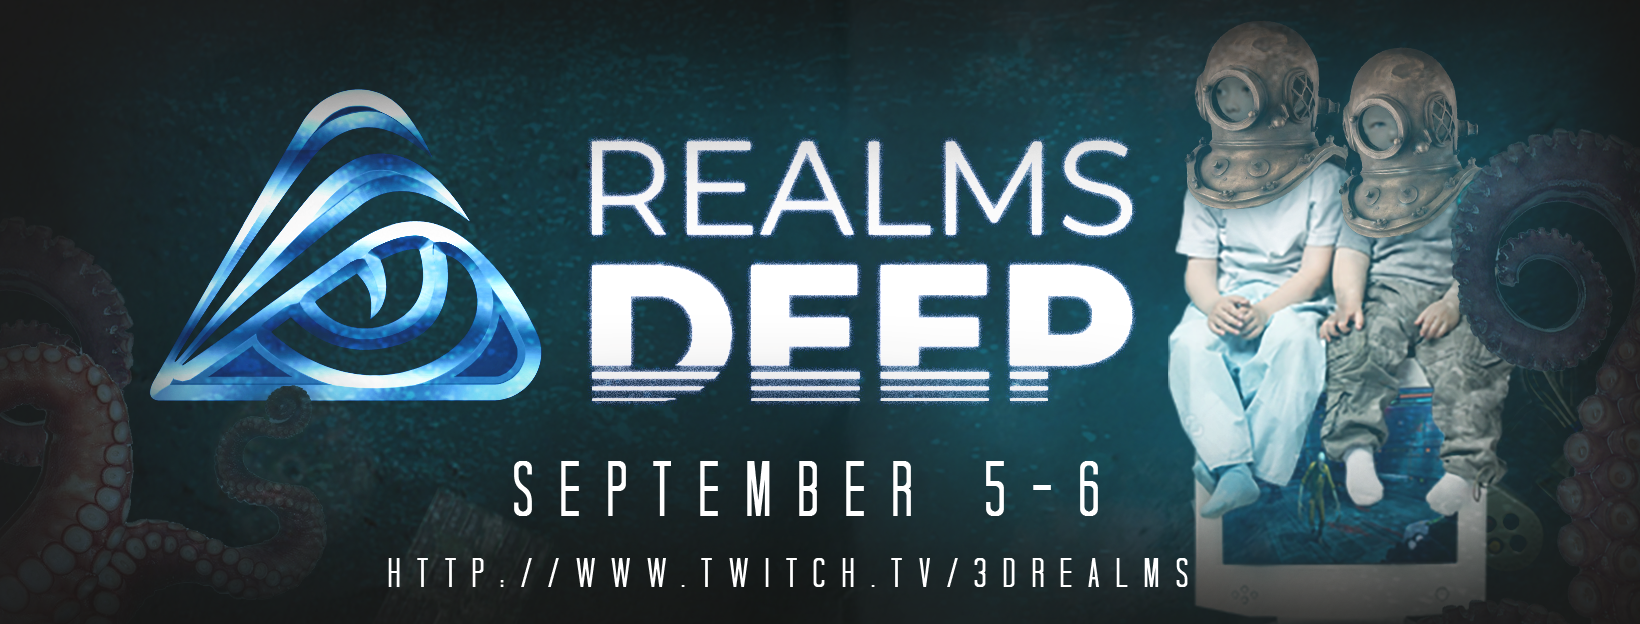 Announcing REALMS DEEP 2020